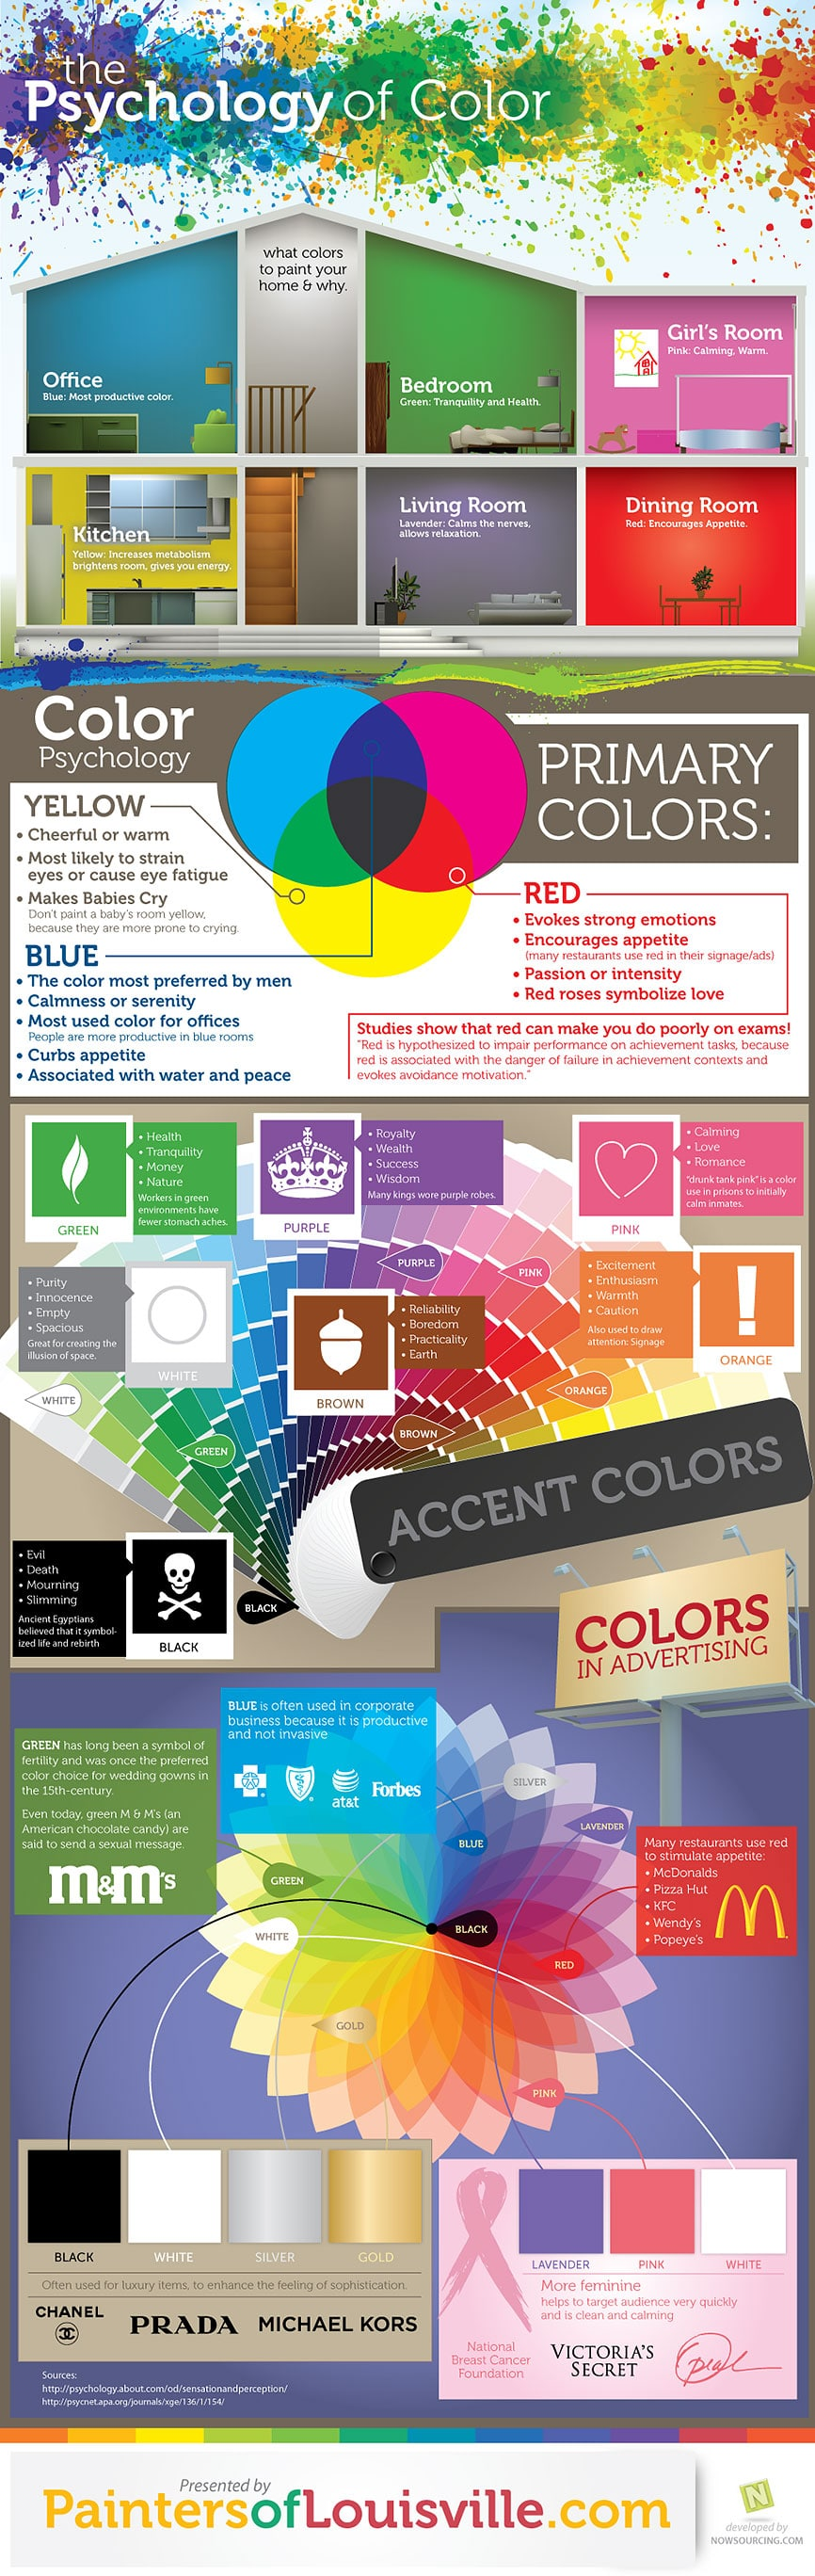 The Psycholigy of Color Infographic